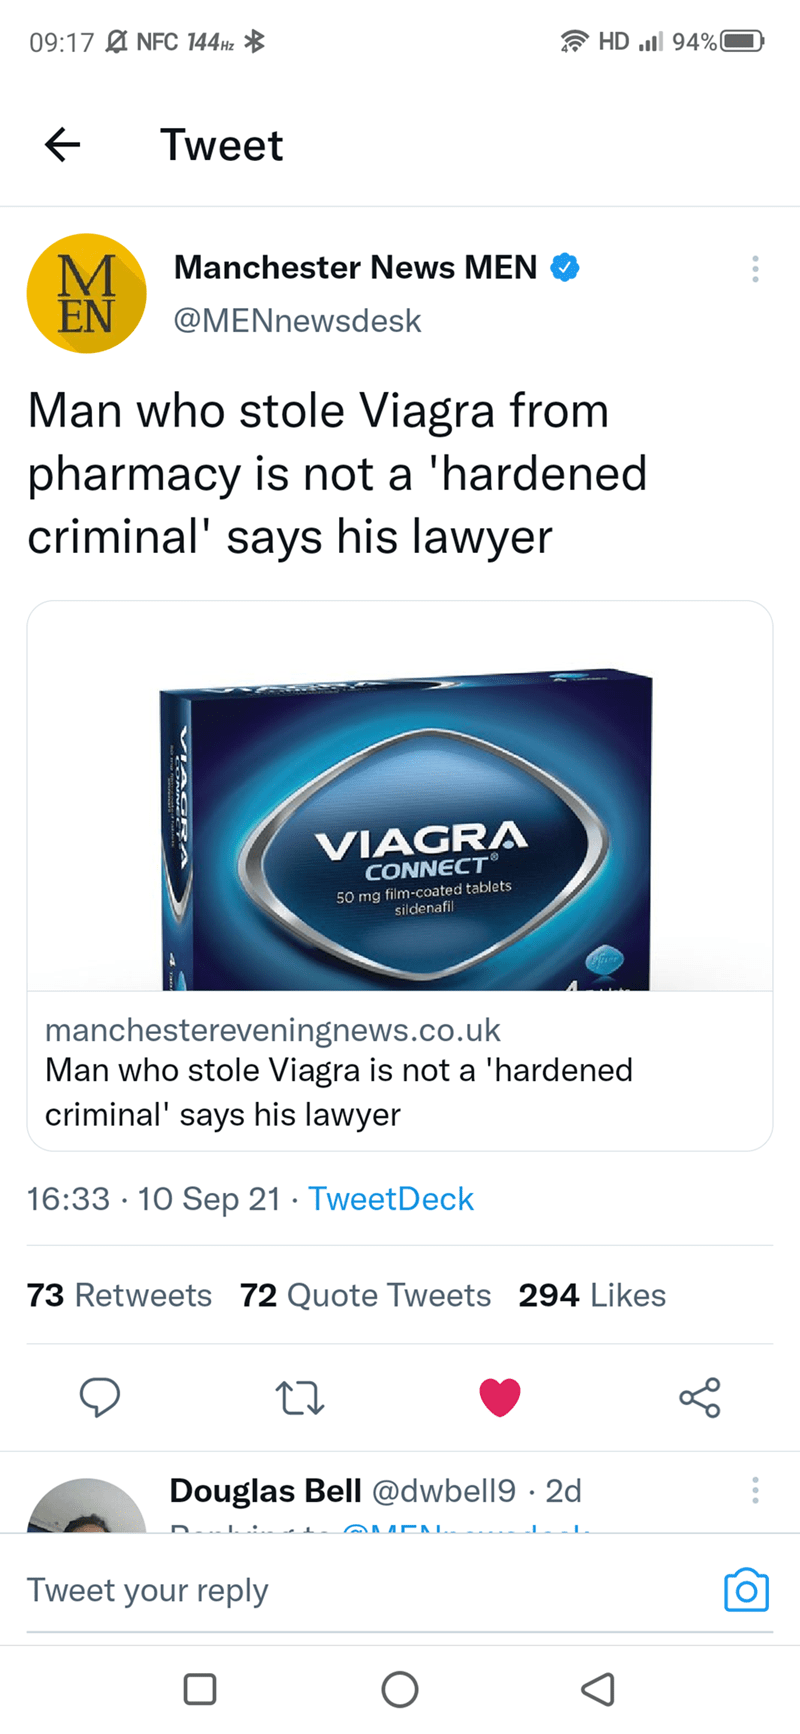 Product - 09:17 Ø NFC 144H2 * HD l 94%0 Tweet Manchester News MEN O M EN @MENnewsdesk Man who stole Viagra from pharmacy is not a 'hardened criminal' says his lawyer VIAGRA CONNECT® 50 mg film-coated tablets sildenafil manchestereveningnews.co.uk Man who stole Viagra is not a 'hardened criminal' says his lawyer 16:33 · 10 Sep 21 · TweetDeck 73 Retweets 72 Quote Tweets 294 Likes Douglas Bell @dwbell9 · 2d @MEA L. Tweet your reply VIAG RA